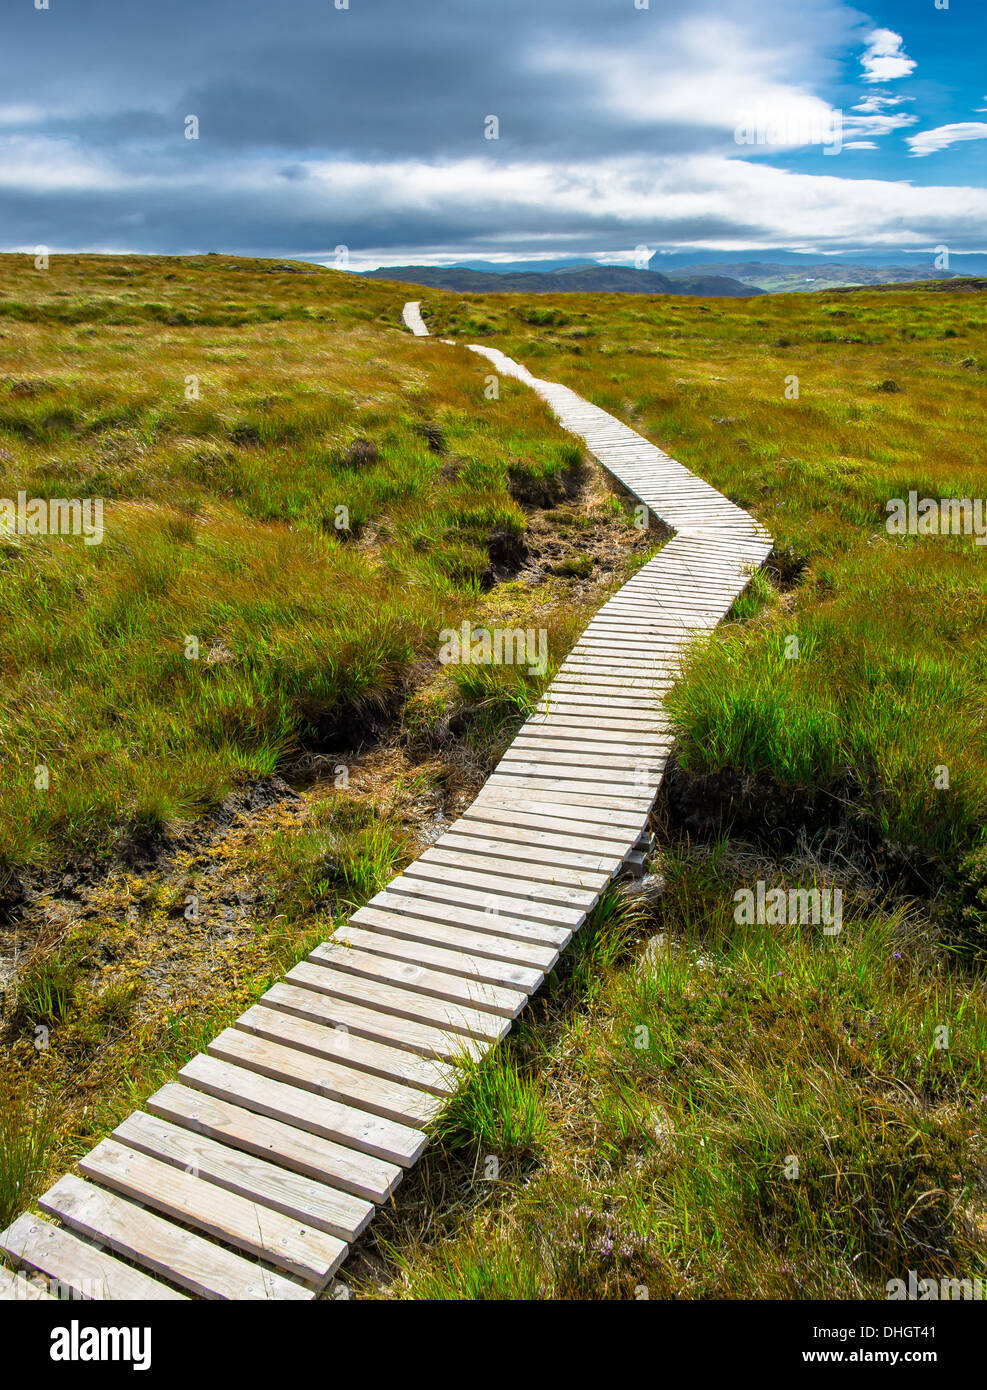 Narrow path up a hill toward the cloudy sky - Stock Image